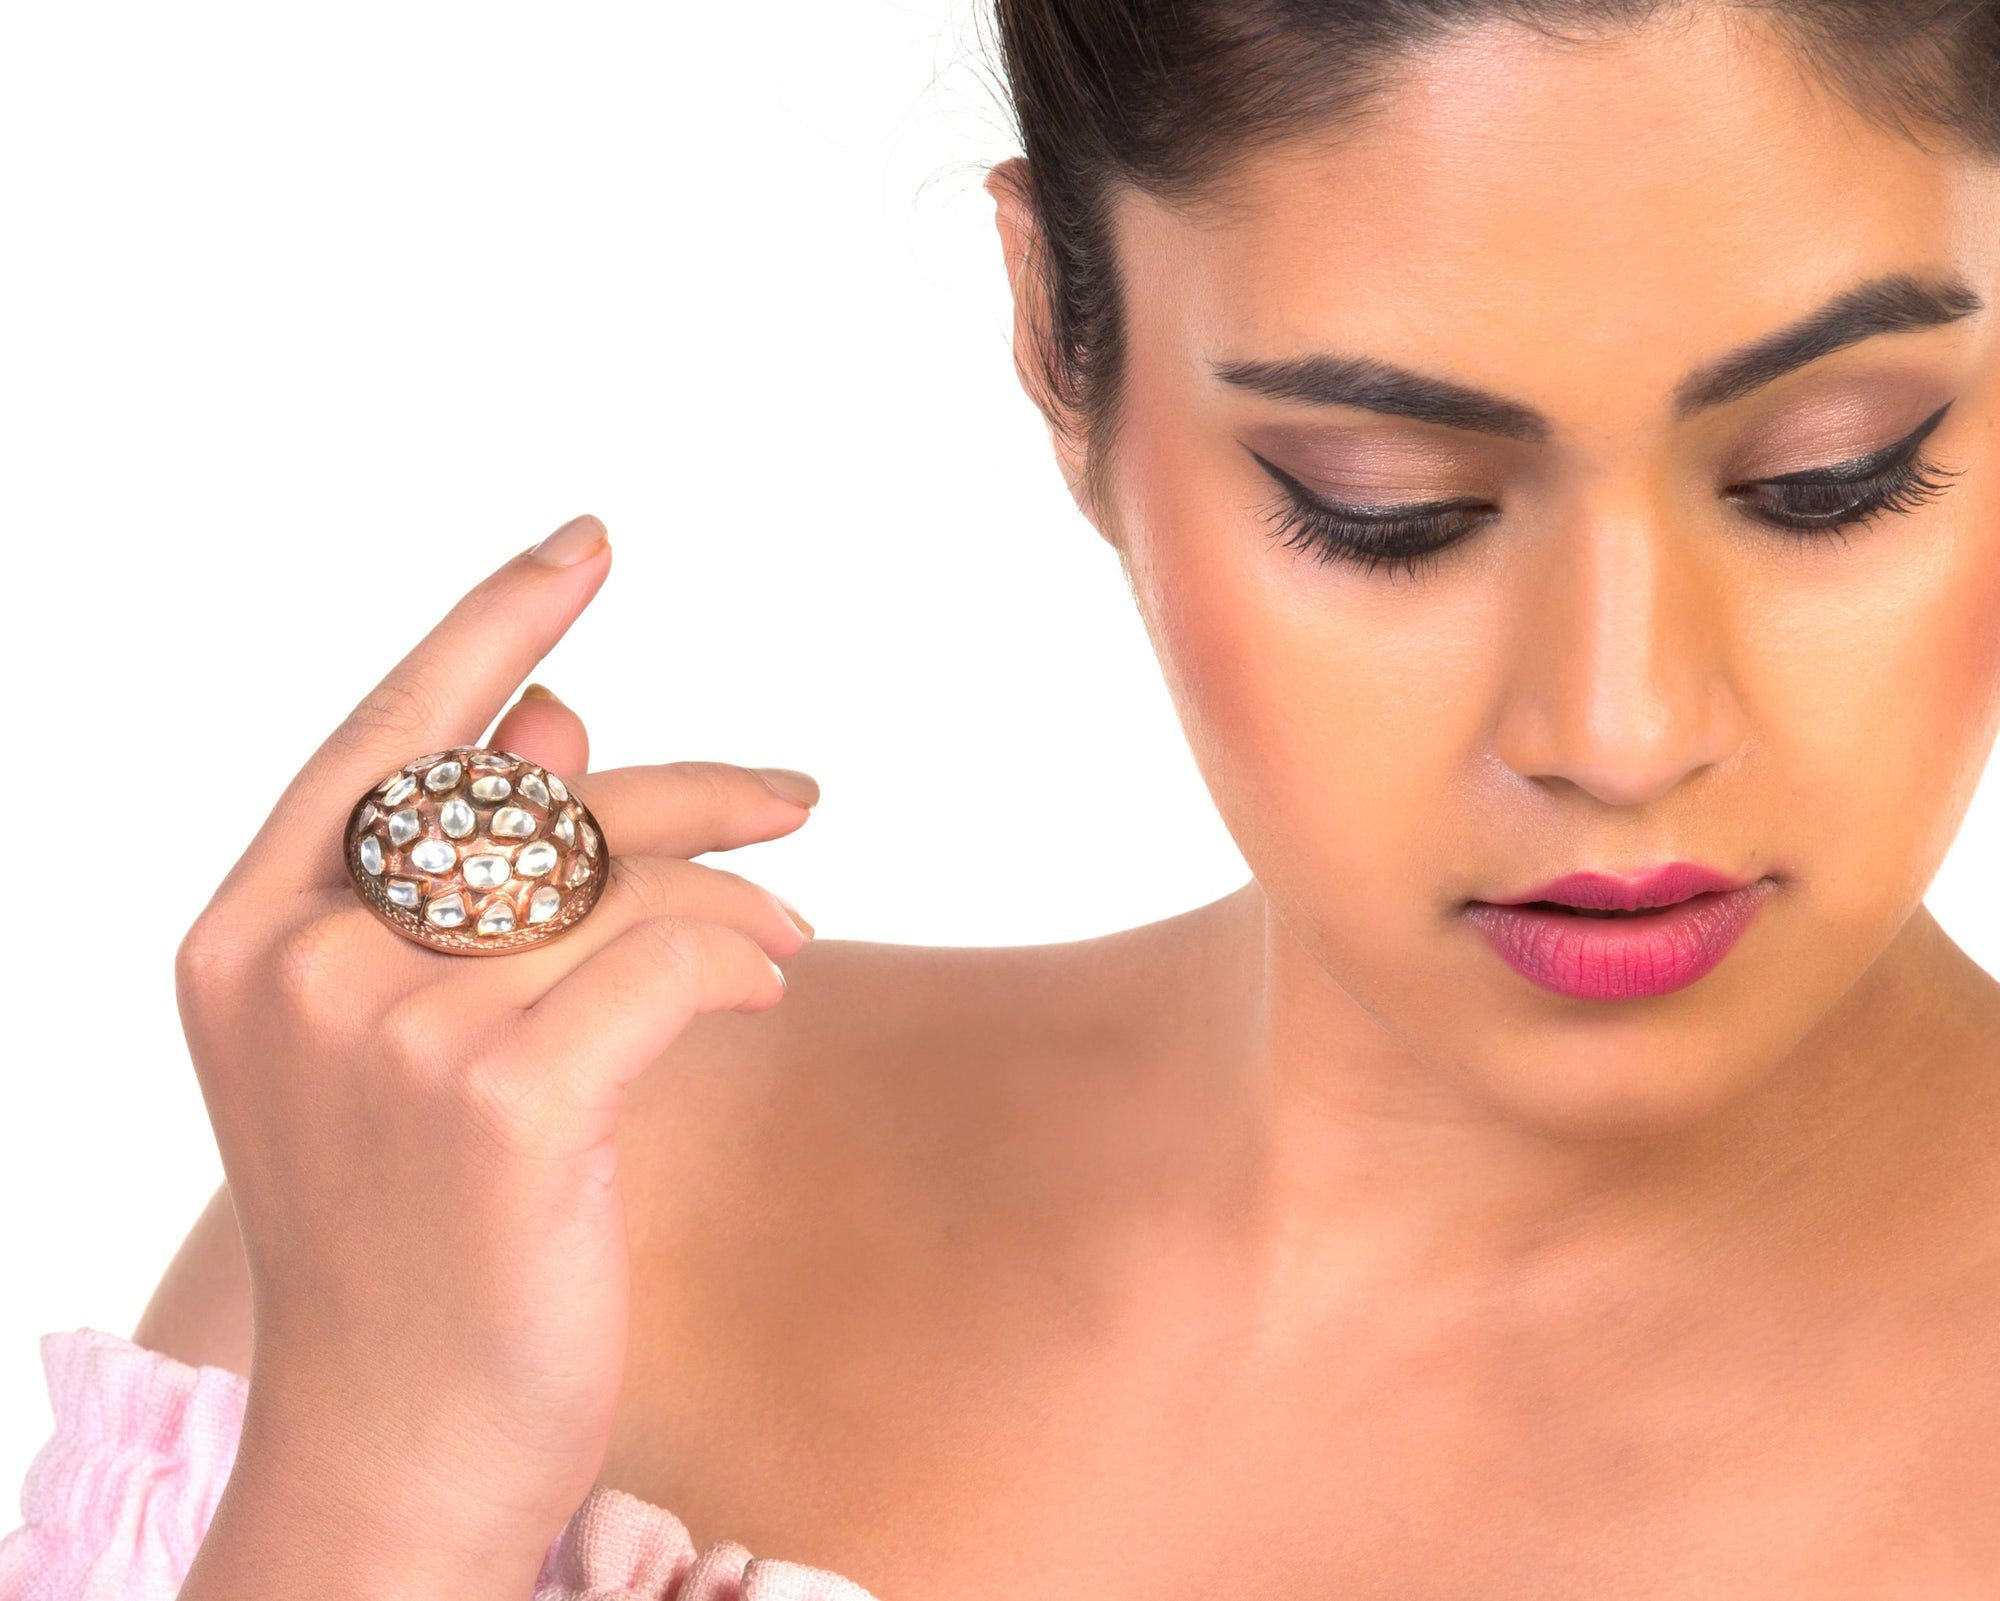 model with shiny dome finger ring